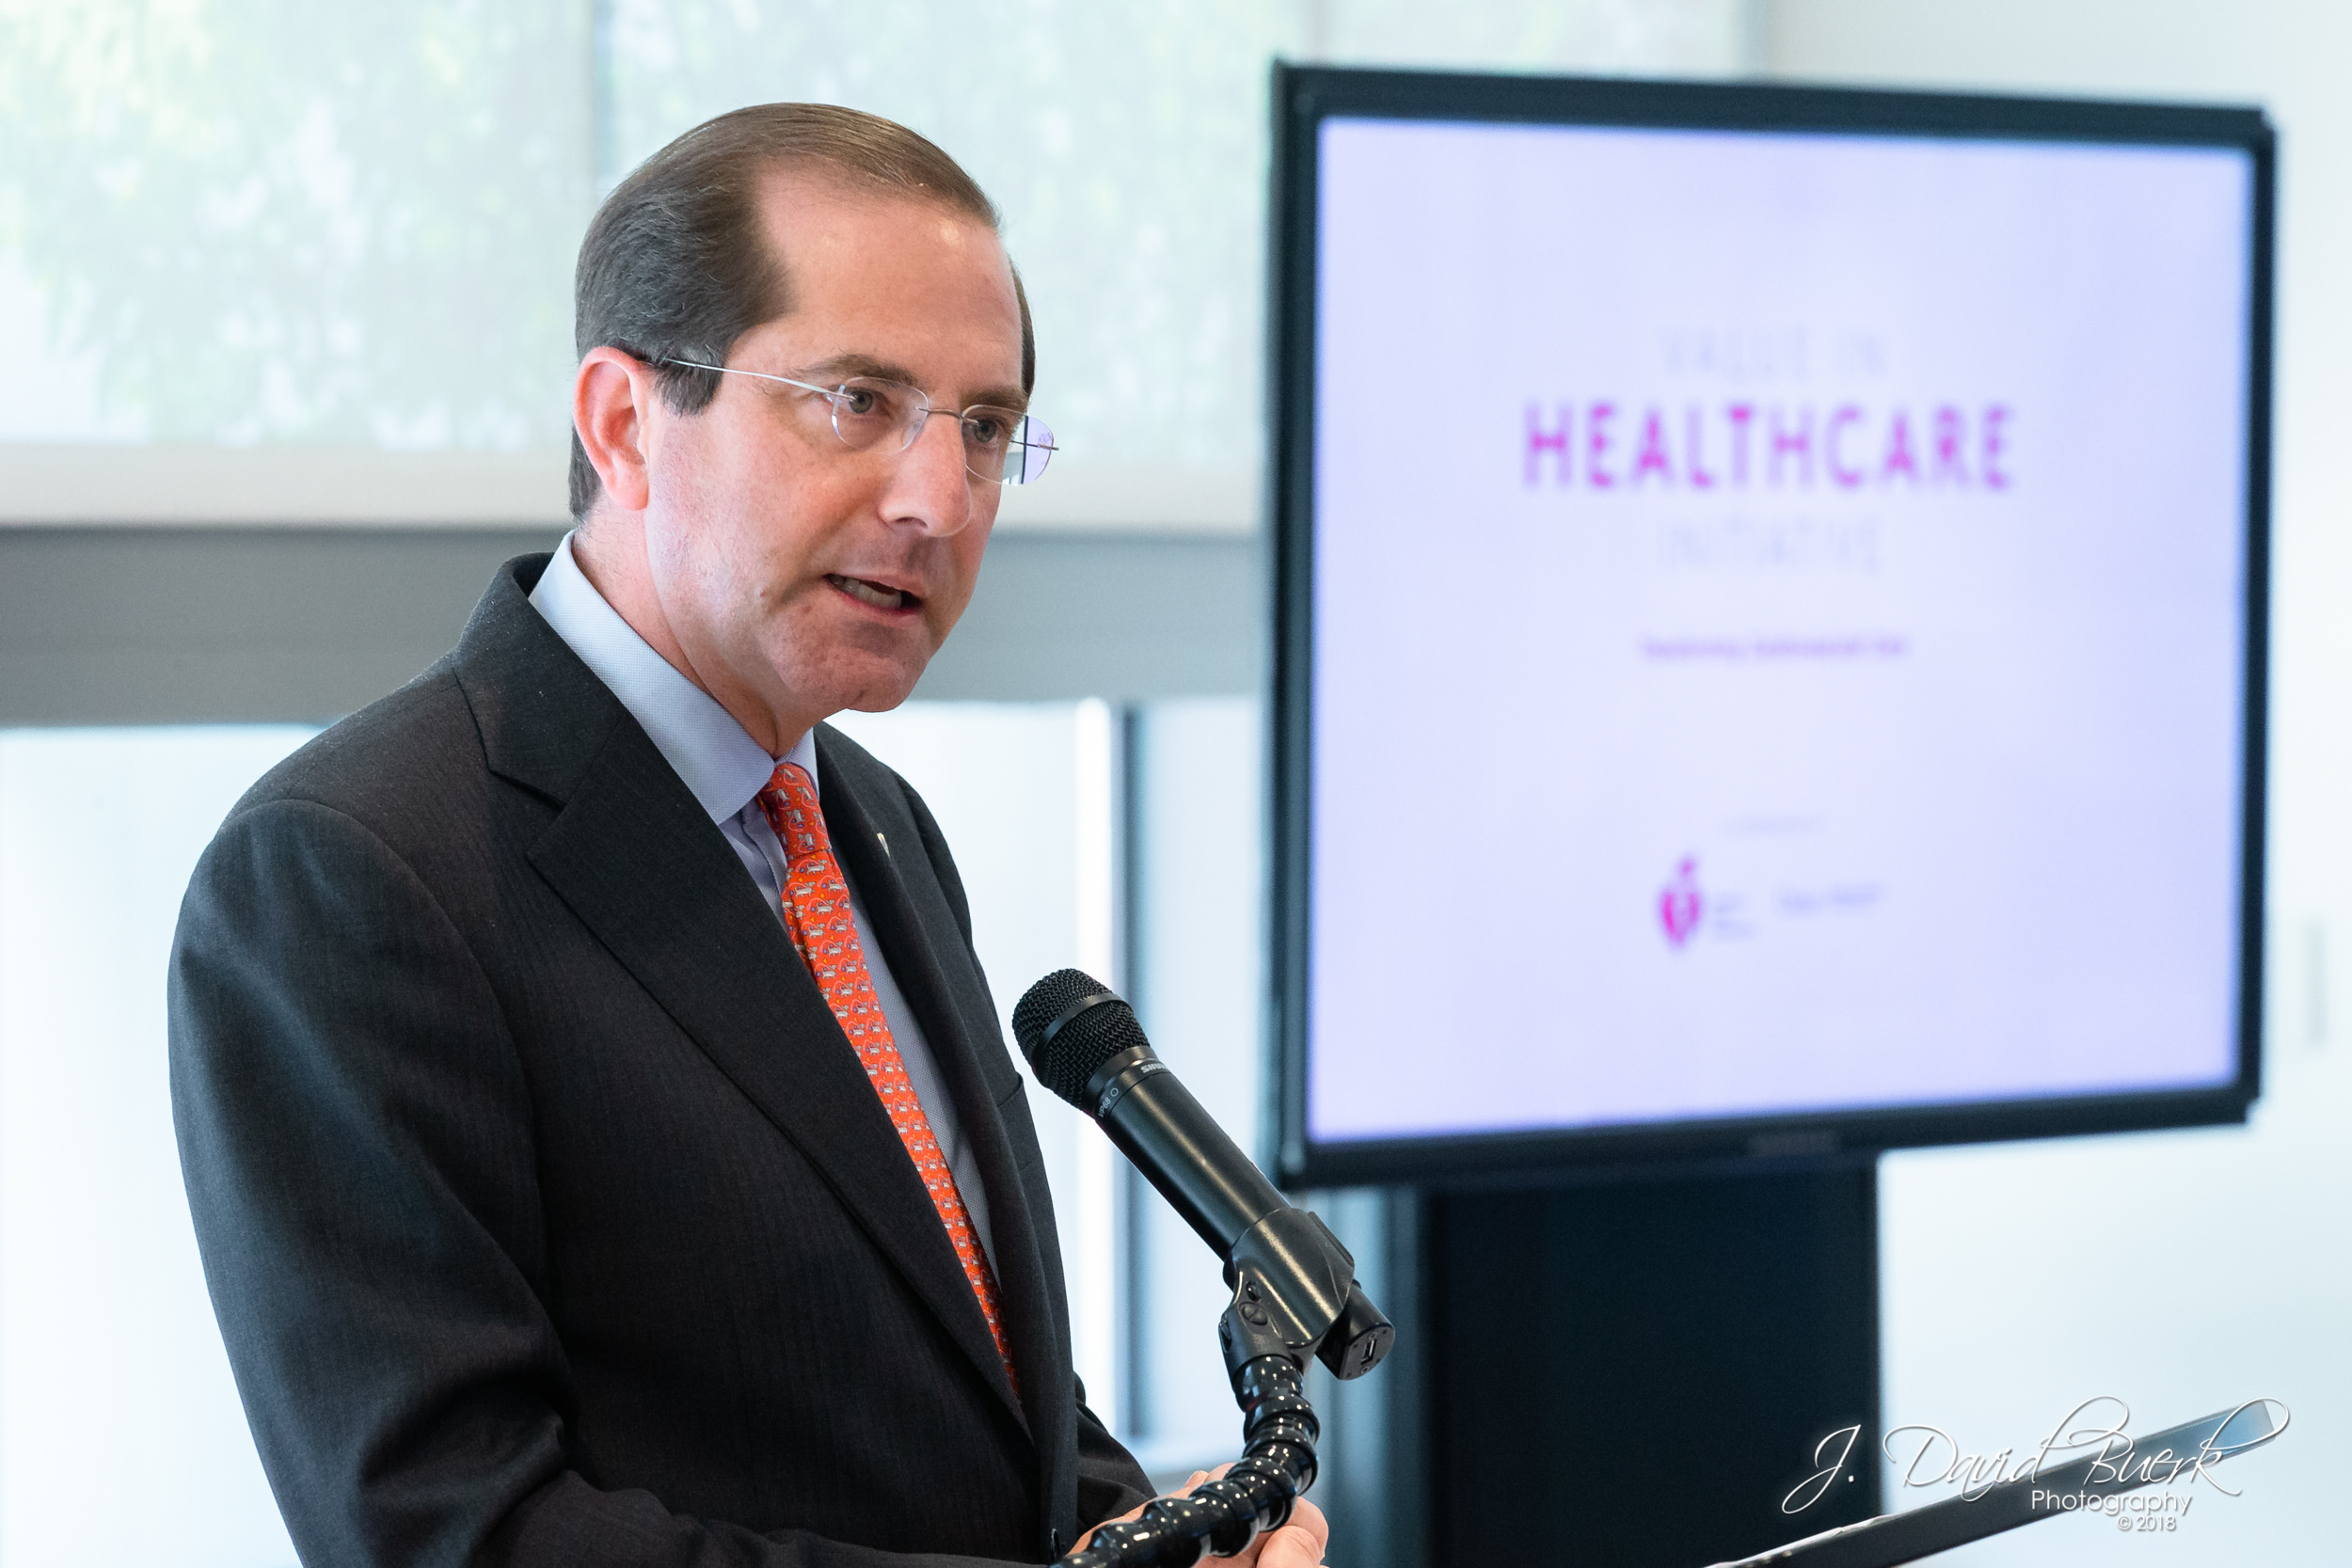 Secretary of Health and Human Services Alex Azar speaking at The American Heart Association's Value in Healthcare Initiative Meeting at Kaiser Permanente's Center for Total Health in Washington, DC.